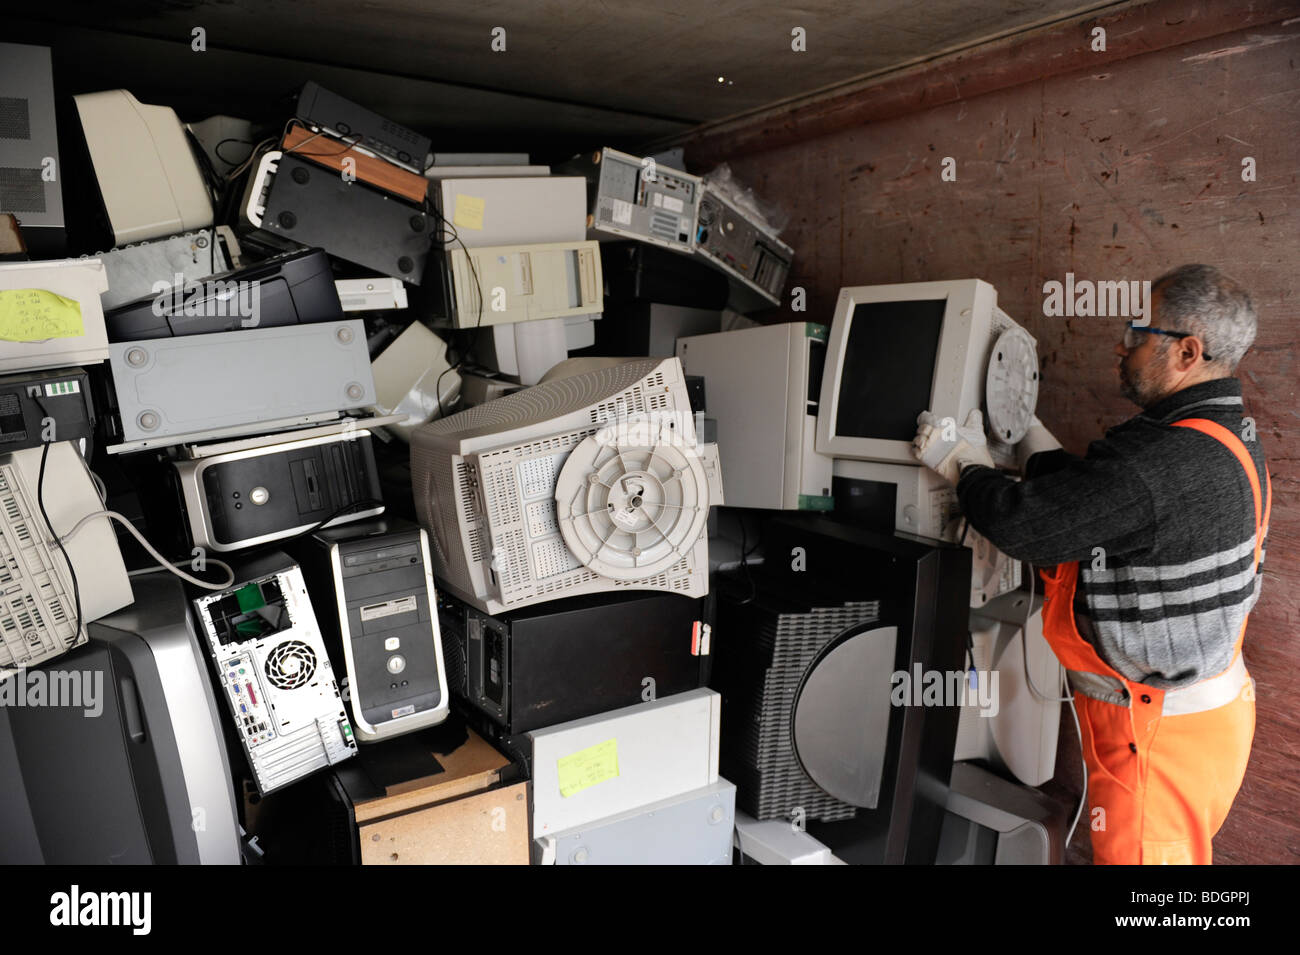 Scrap Trade Stock Photos Images Alamy Electronics Recycling Pictures Zimbio Germany Hamburg Collection And Of Electronic At Public Recycle Place Image